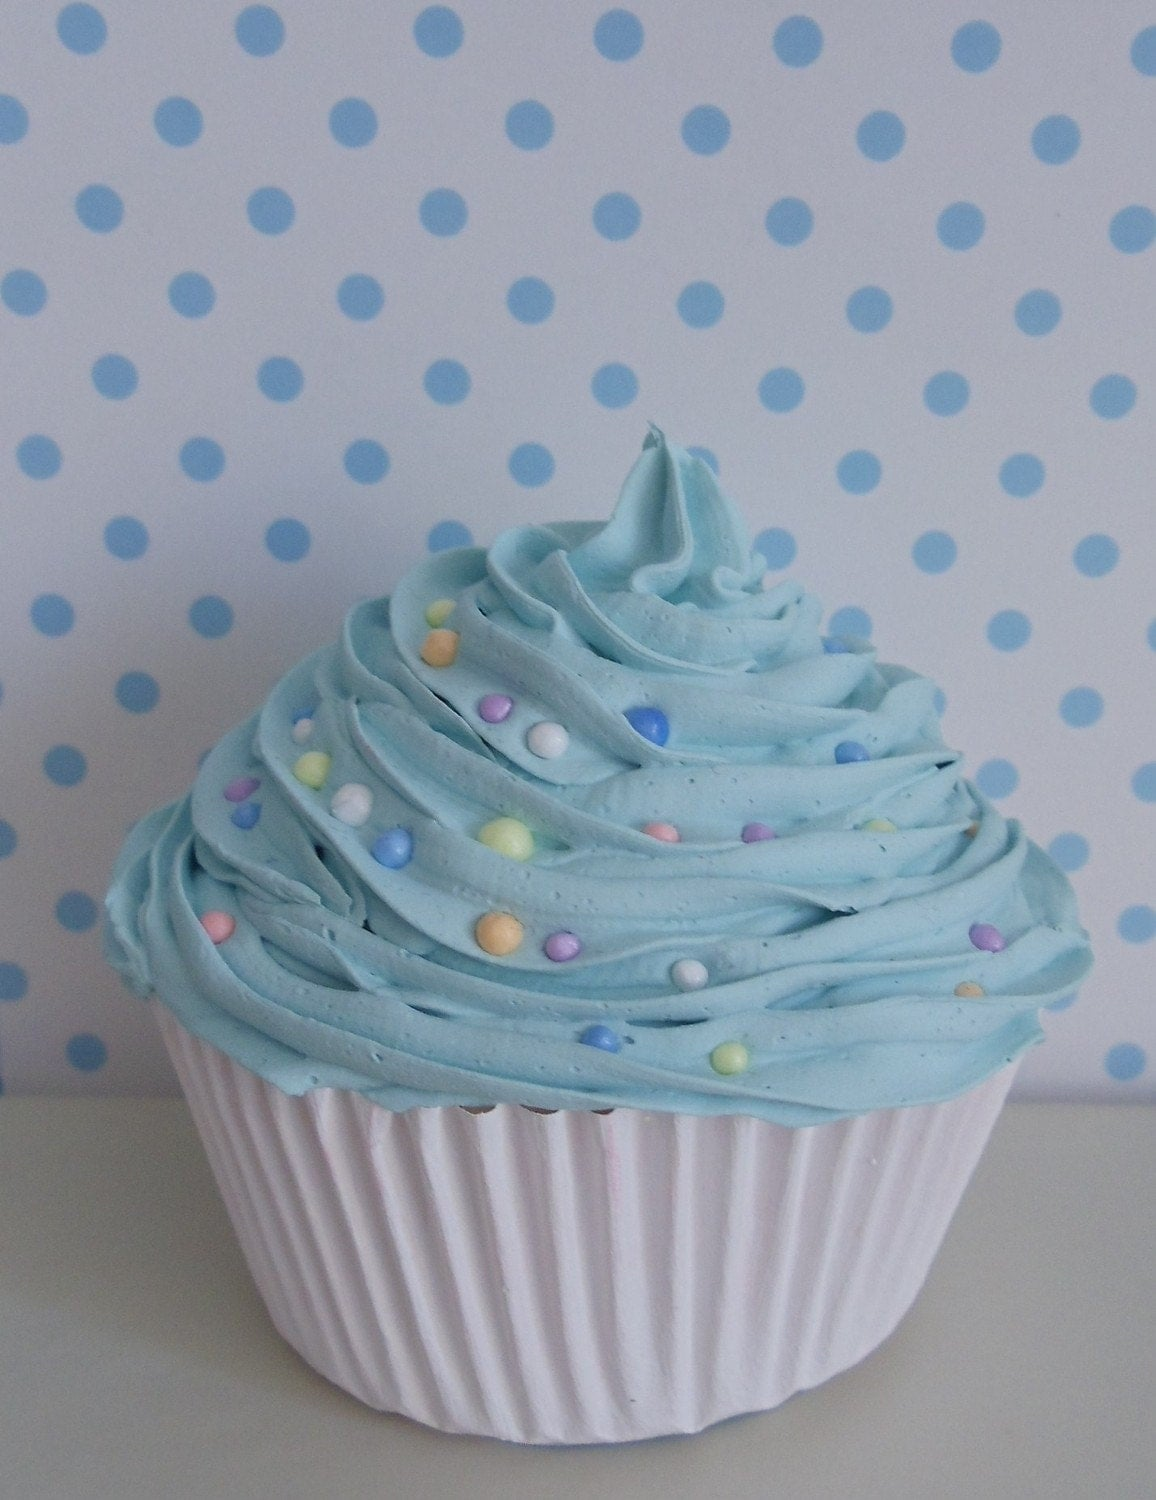 Sweet Cupcake With Light Blue Frosting With Colorful Candy For